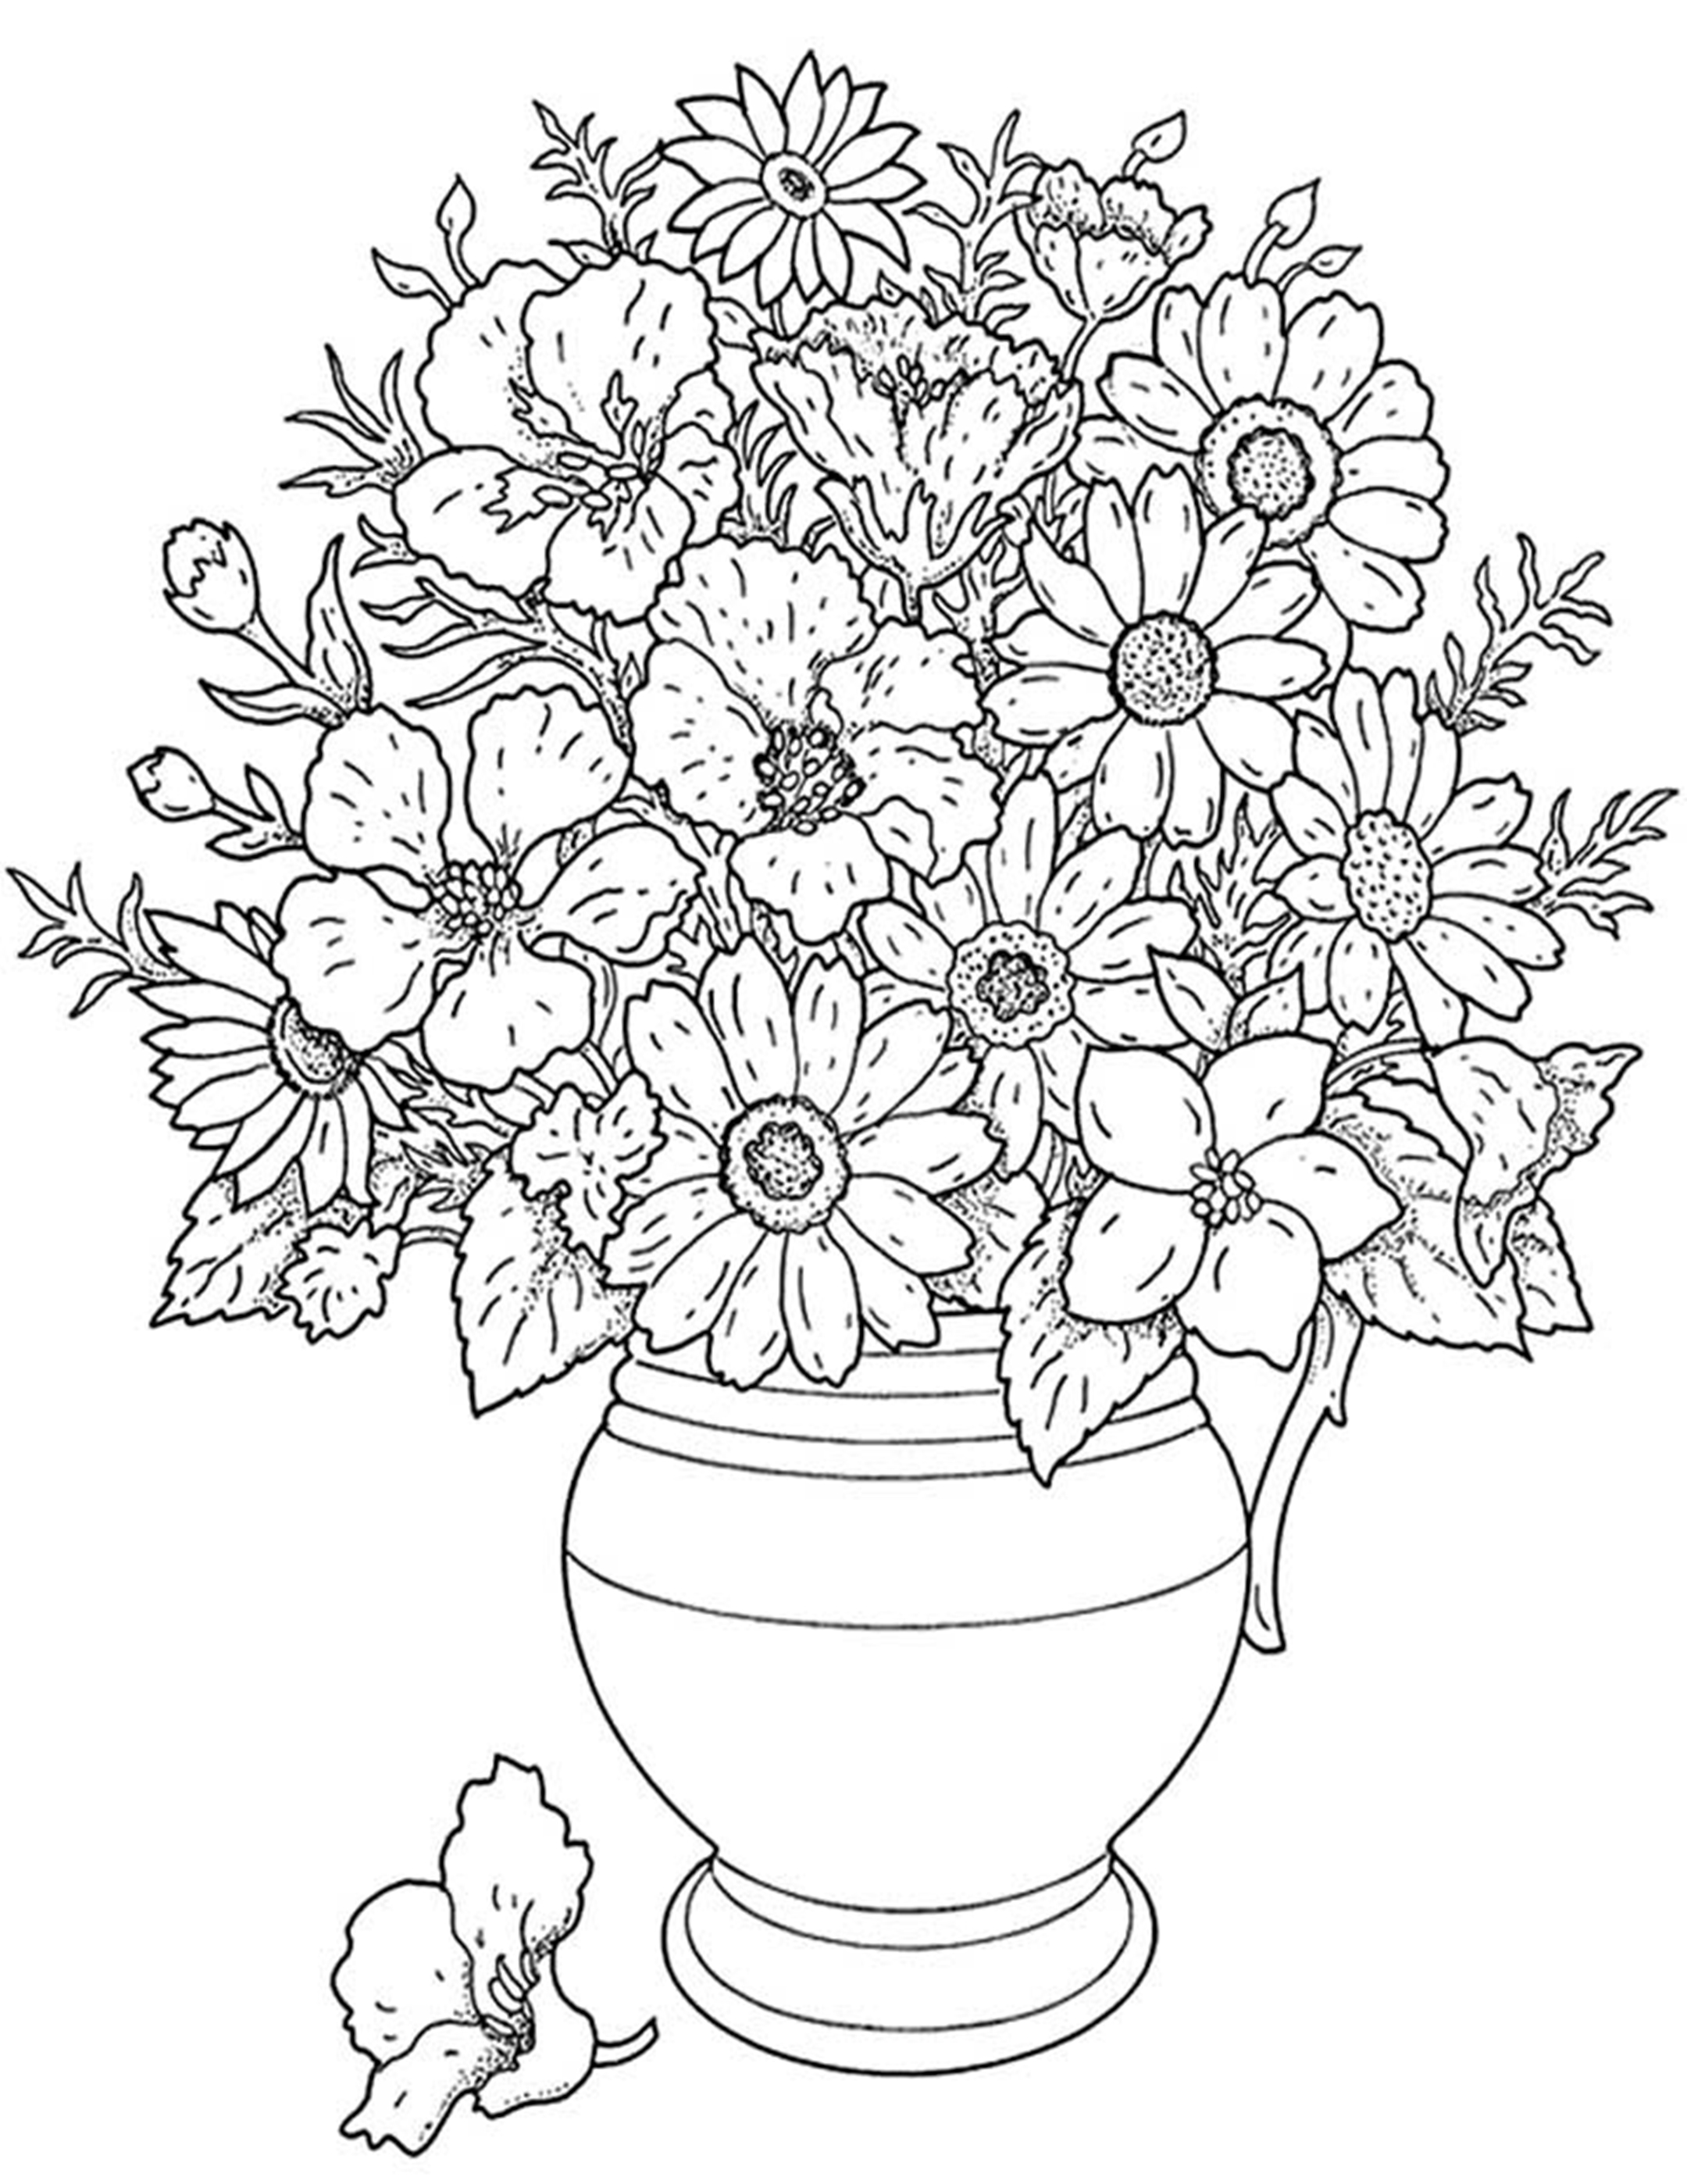 free printable flowers to color large flowers coloring pages to download and print for free to color printable free flowers